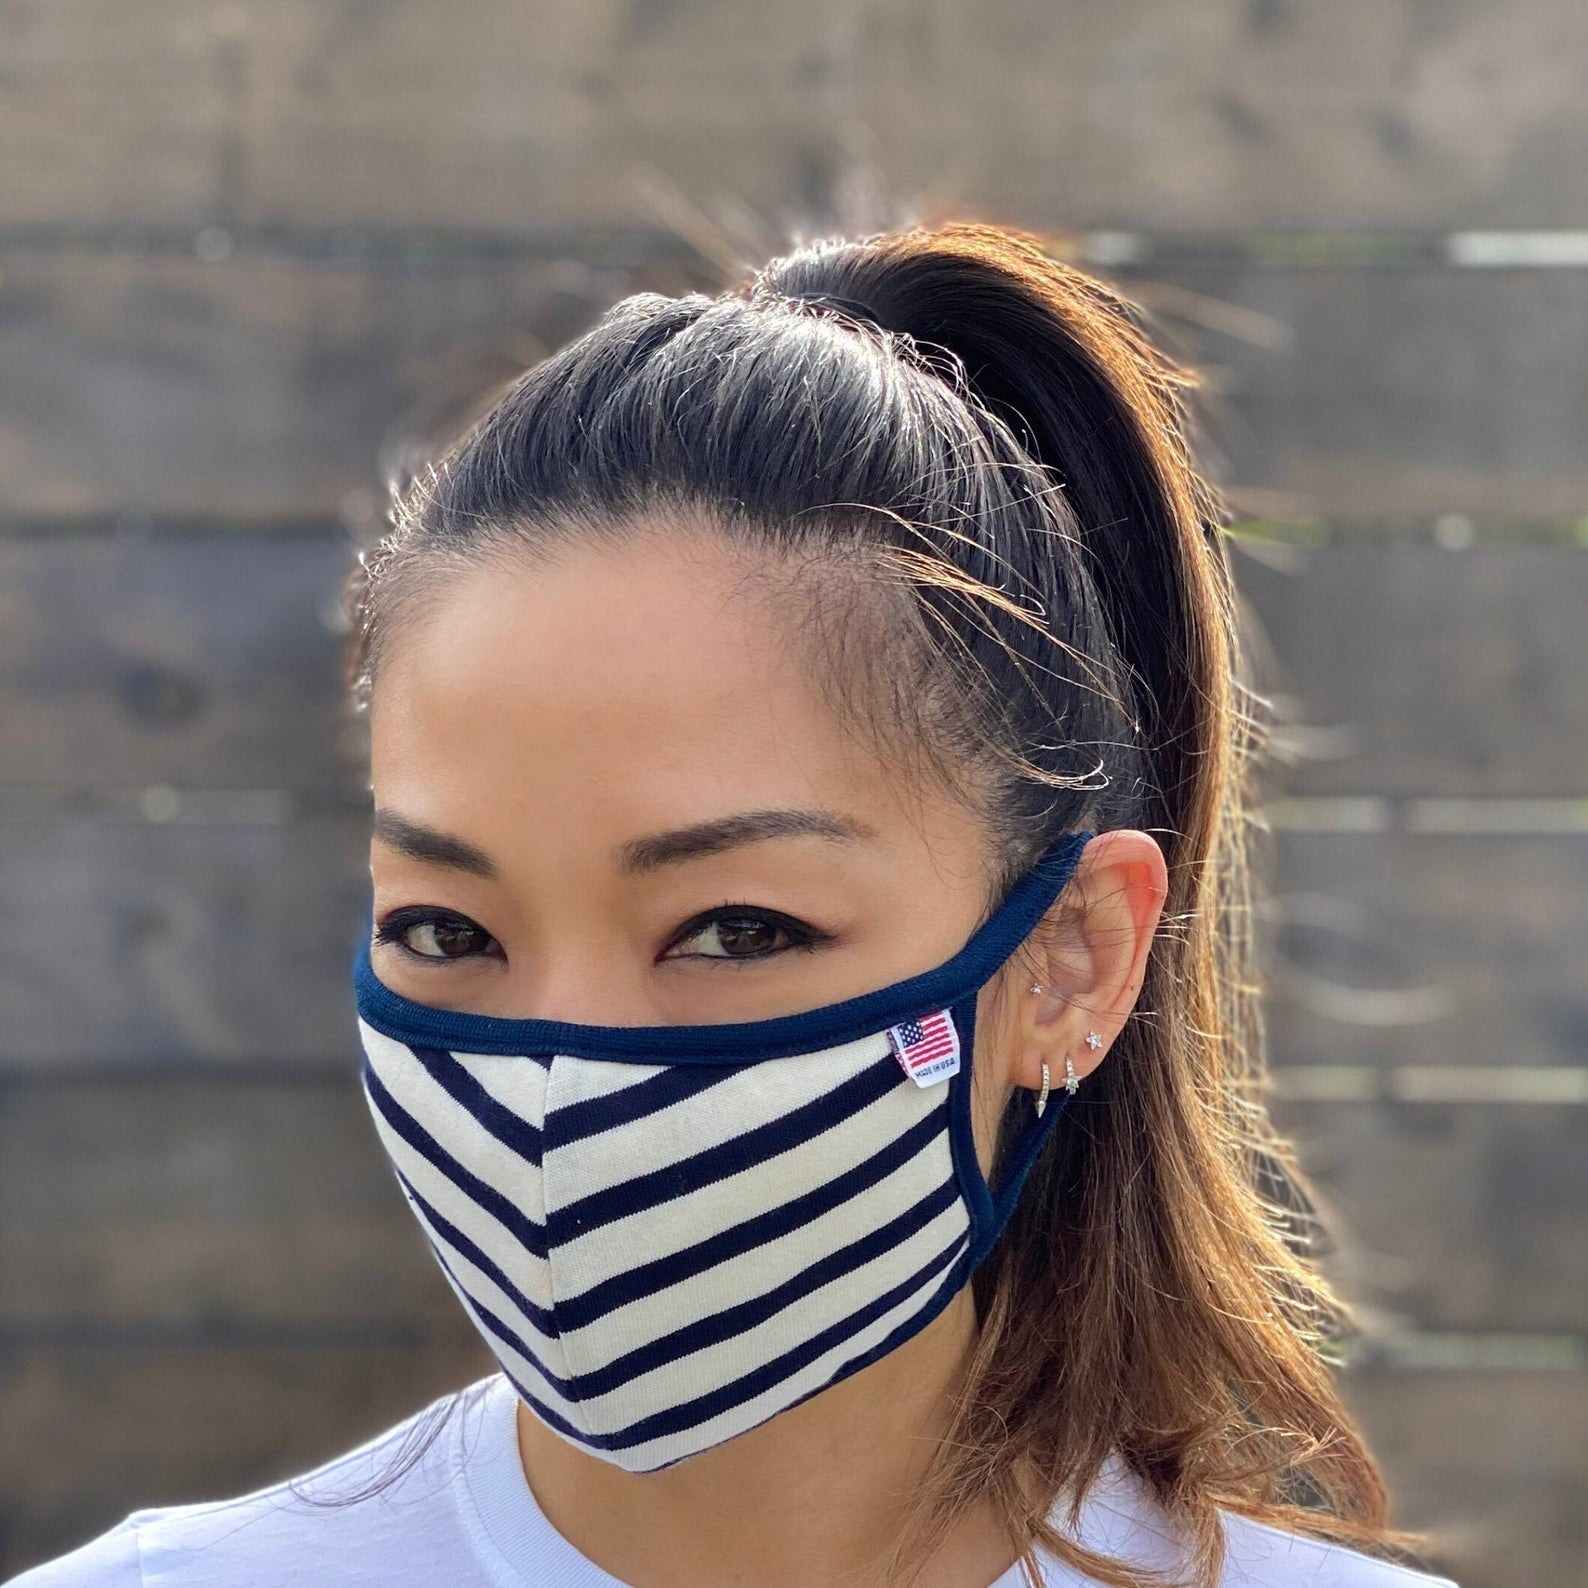 A model in a white and blue striped face mask